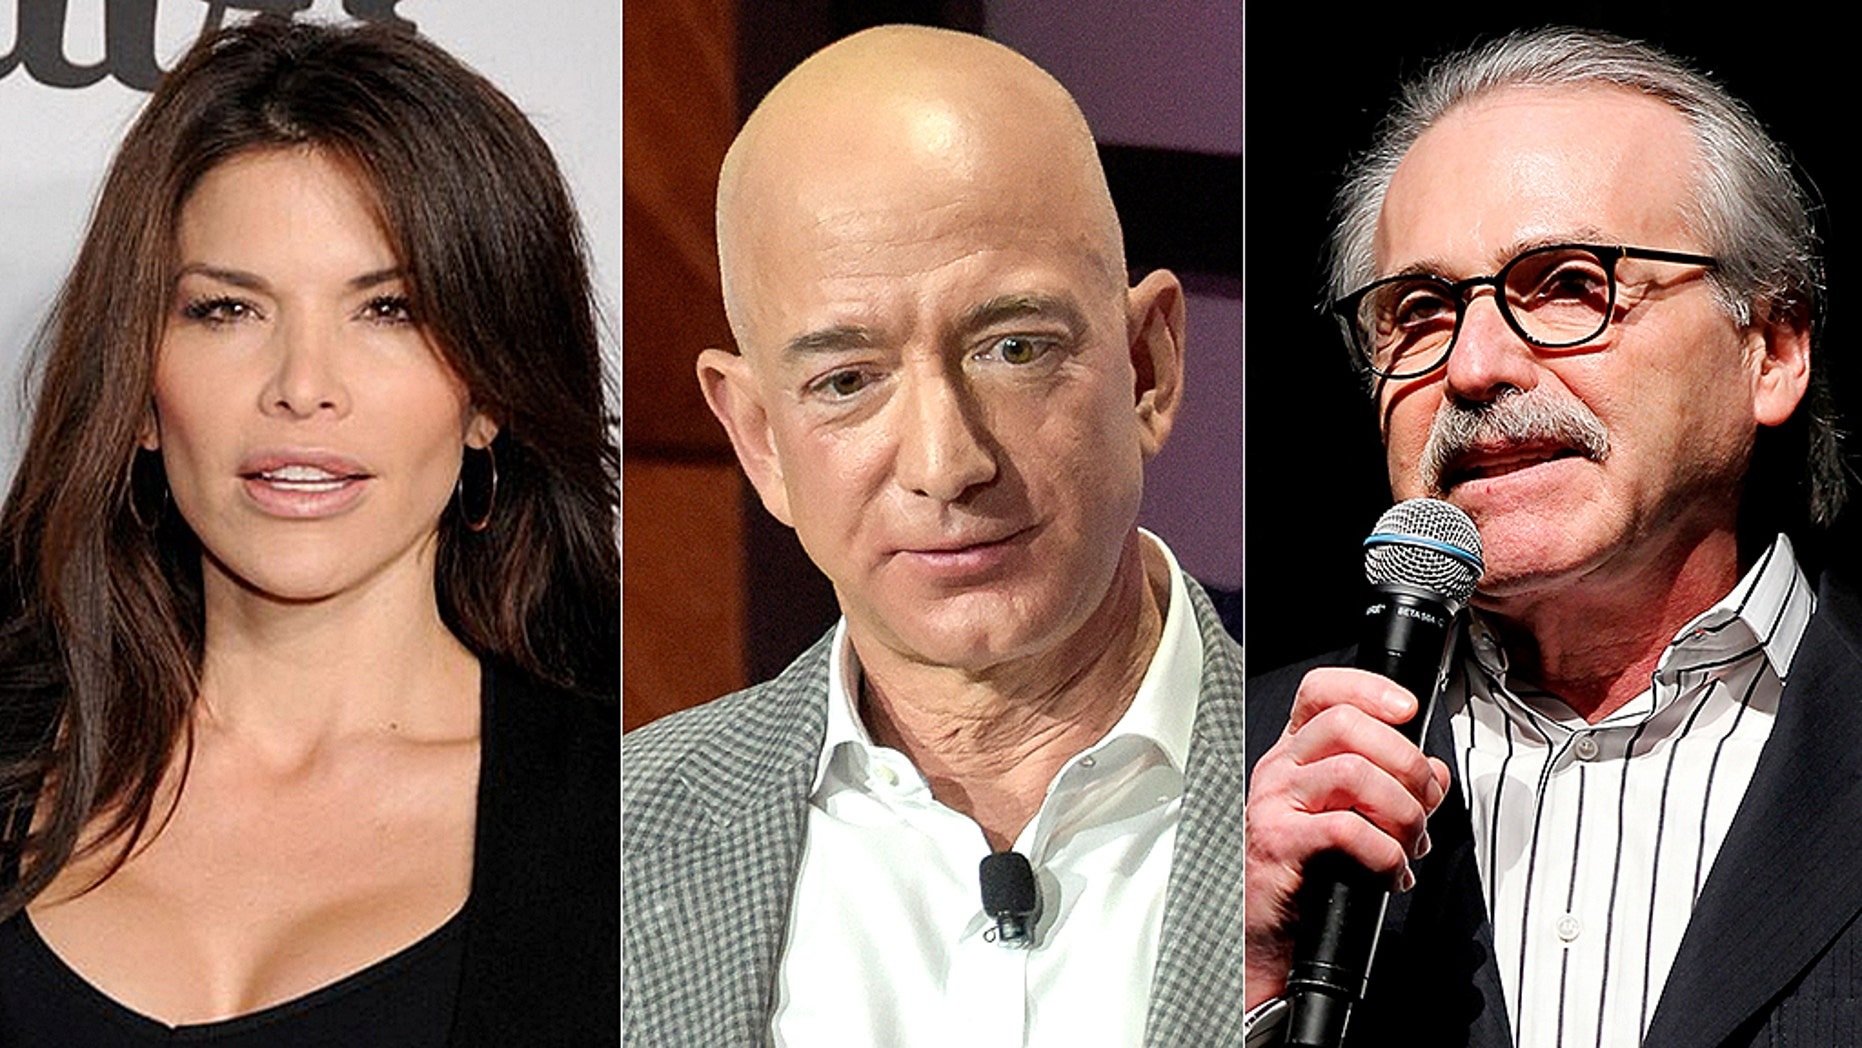 Lauren Sanchez, Jeff Bezos and American Media CEO David Pecker, the publisher of National Enquirer.